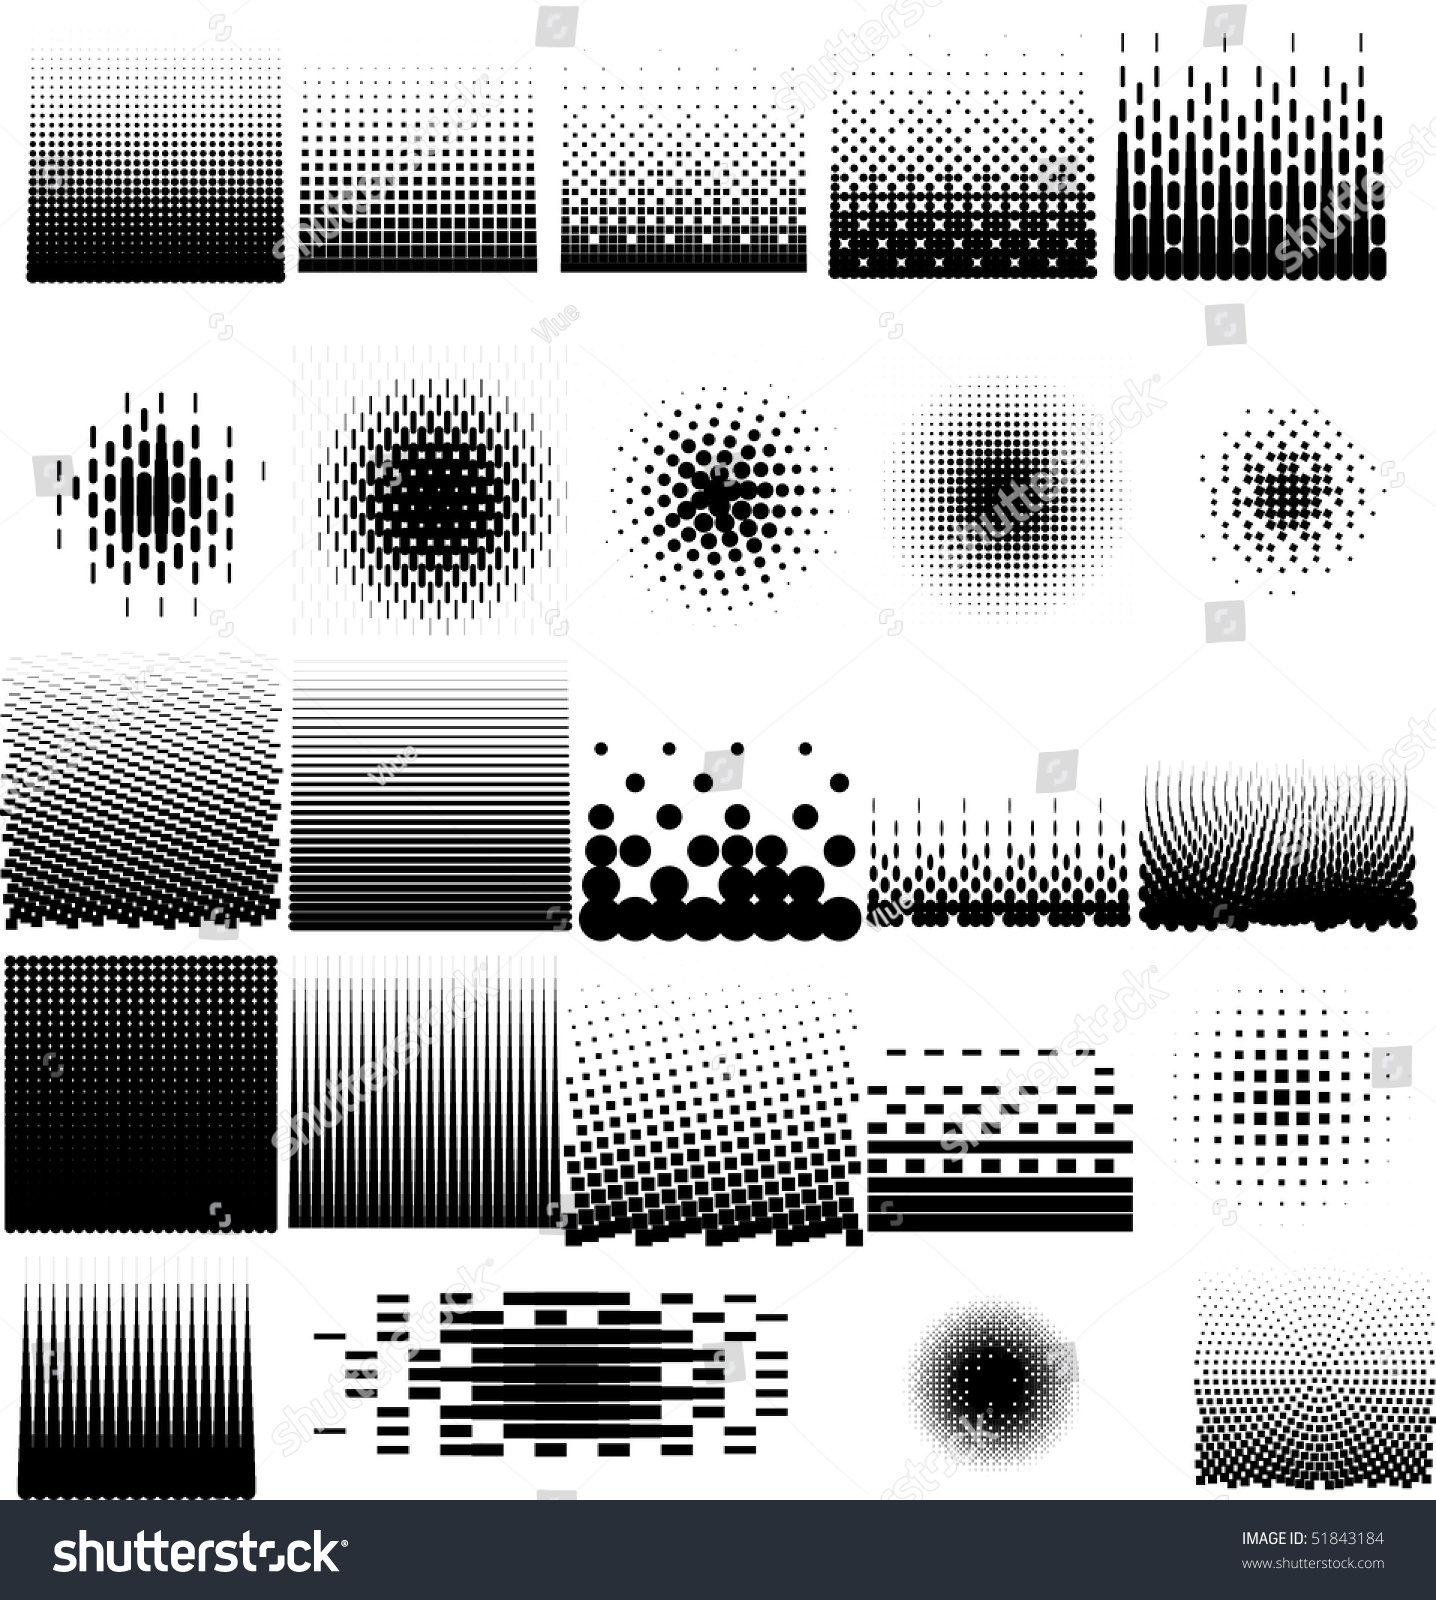 Line Art Vs Halftone : Collection set different abstract halftone art stock